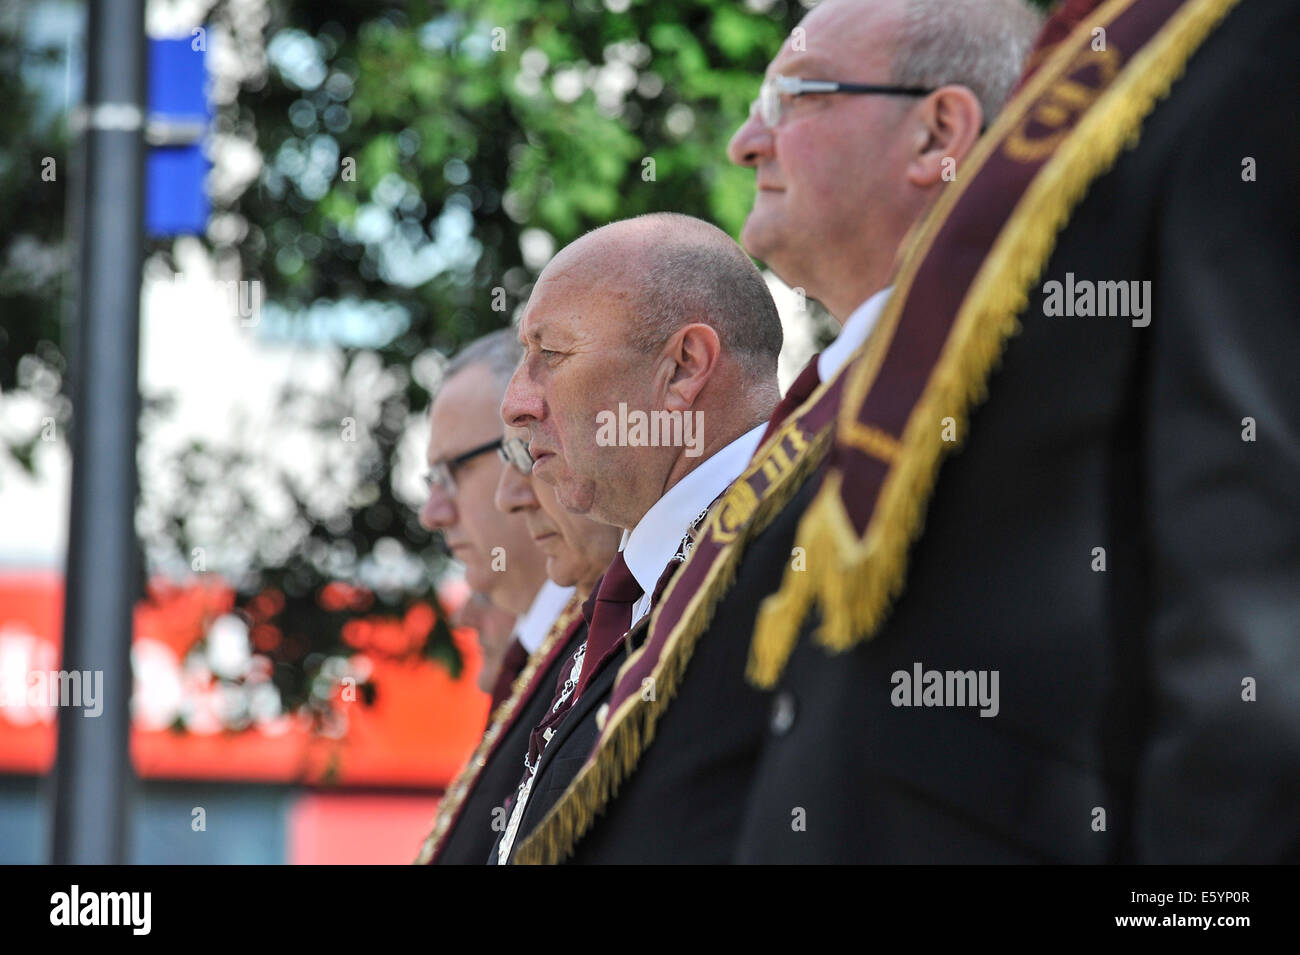 Derry, Londonderry, Northern Ireland. 9th August, 2014.  Apprentice Boys annual parade. Jim Brownlee, governor of - Stock Image